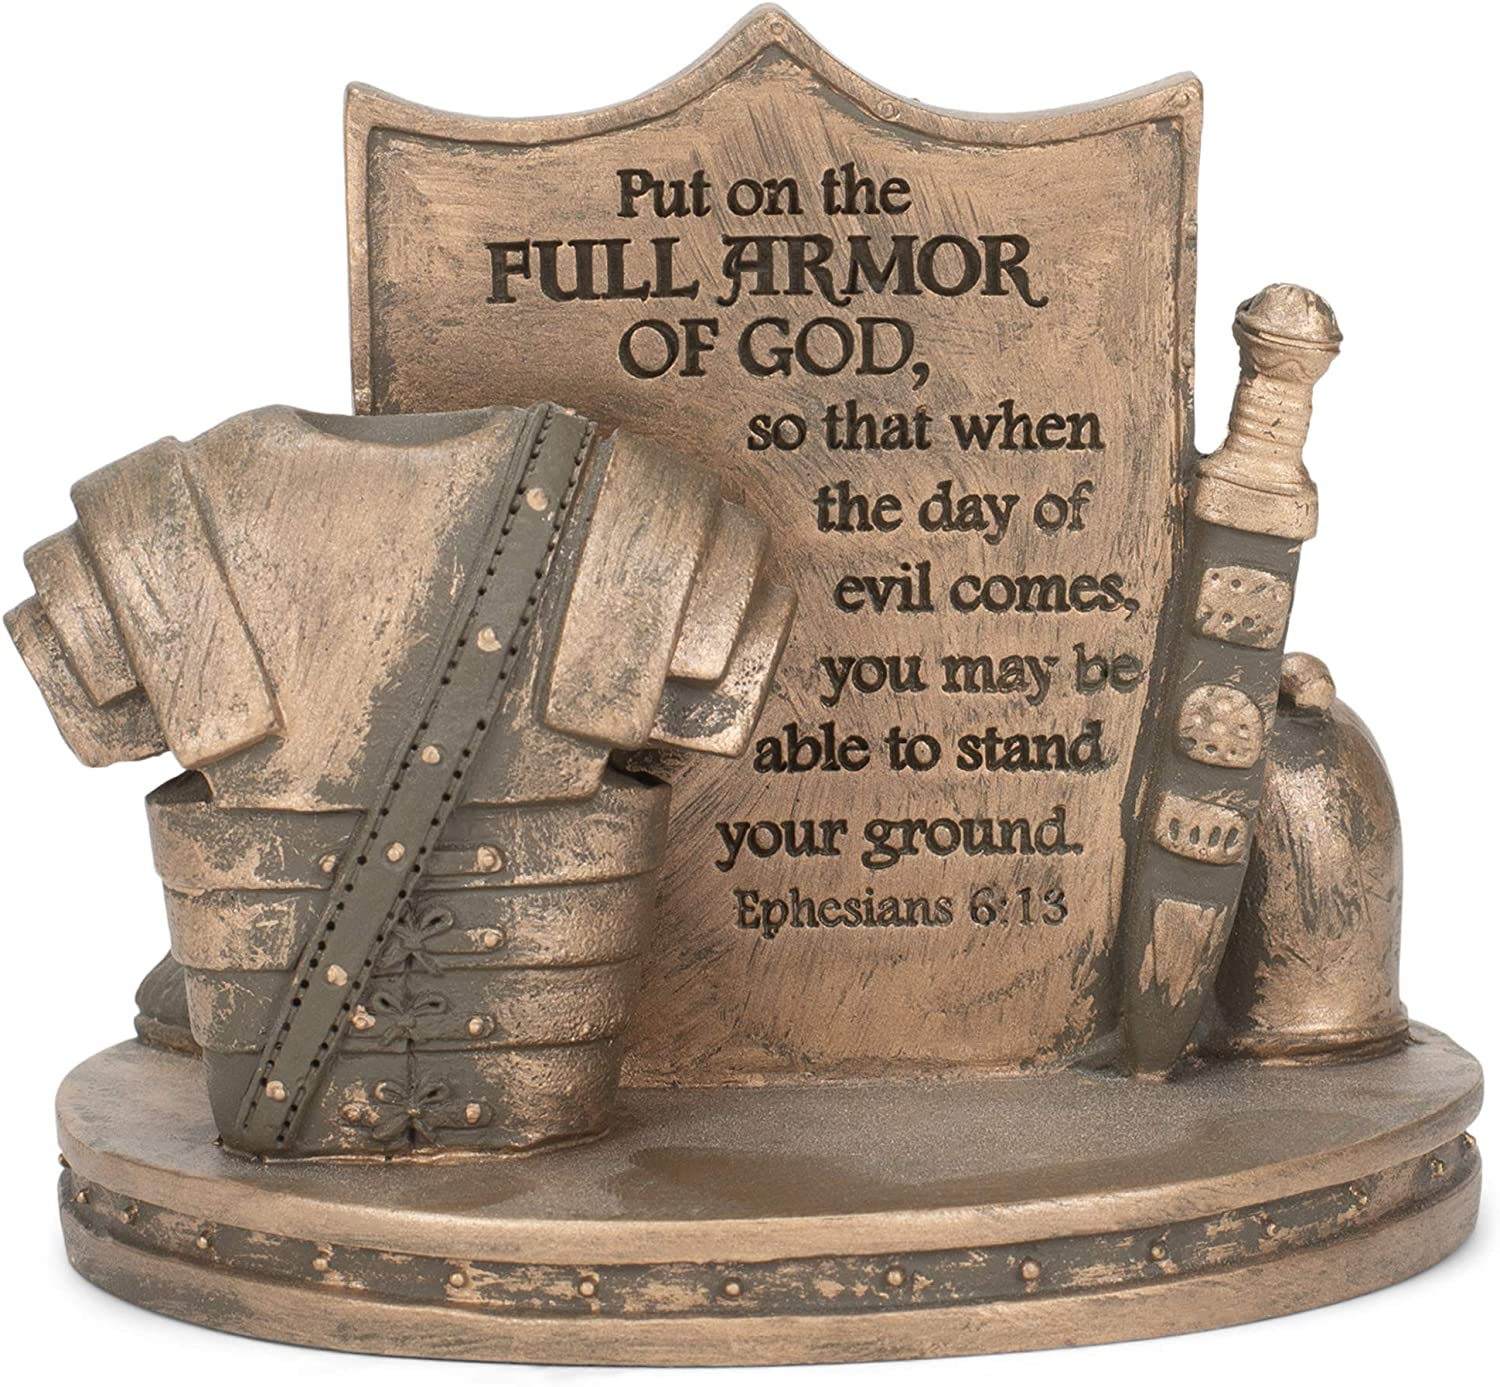 Dicksons Bronzetone Full Armor Scripture 3 x 4 Resin Decorative Tabletop Card Holder